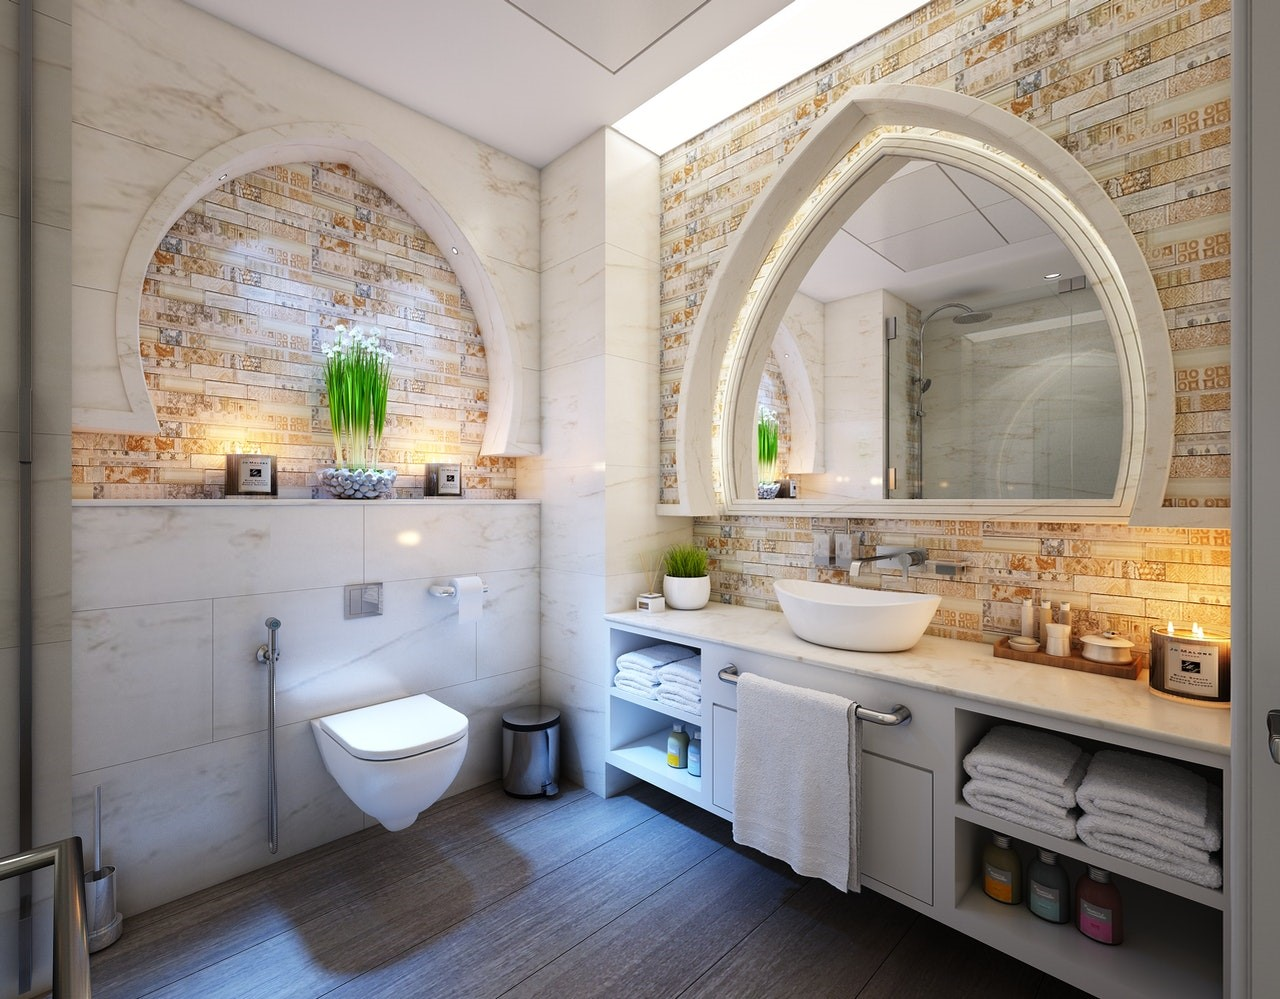 How to Equip the Perfect Bathroom According to Your Lifestyle